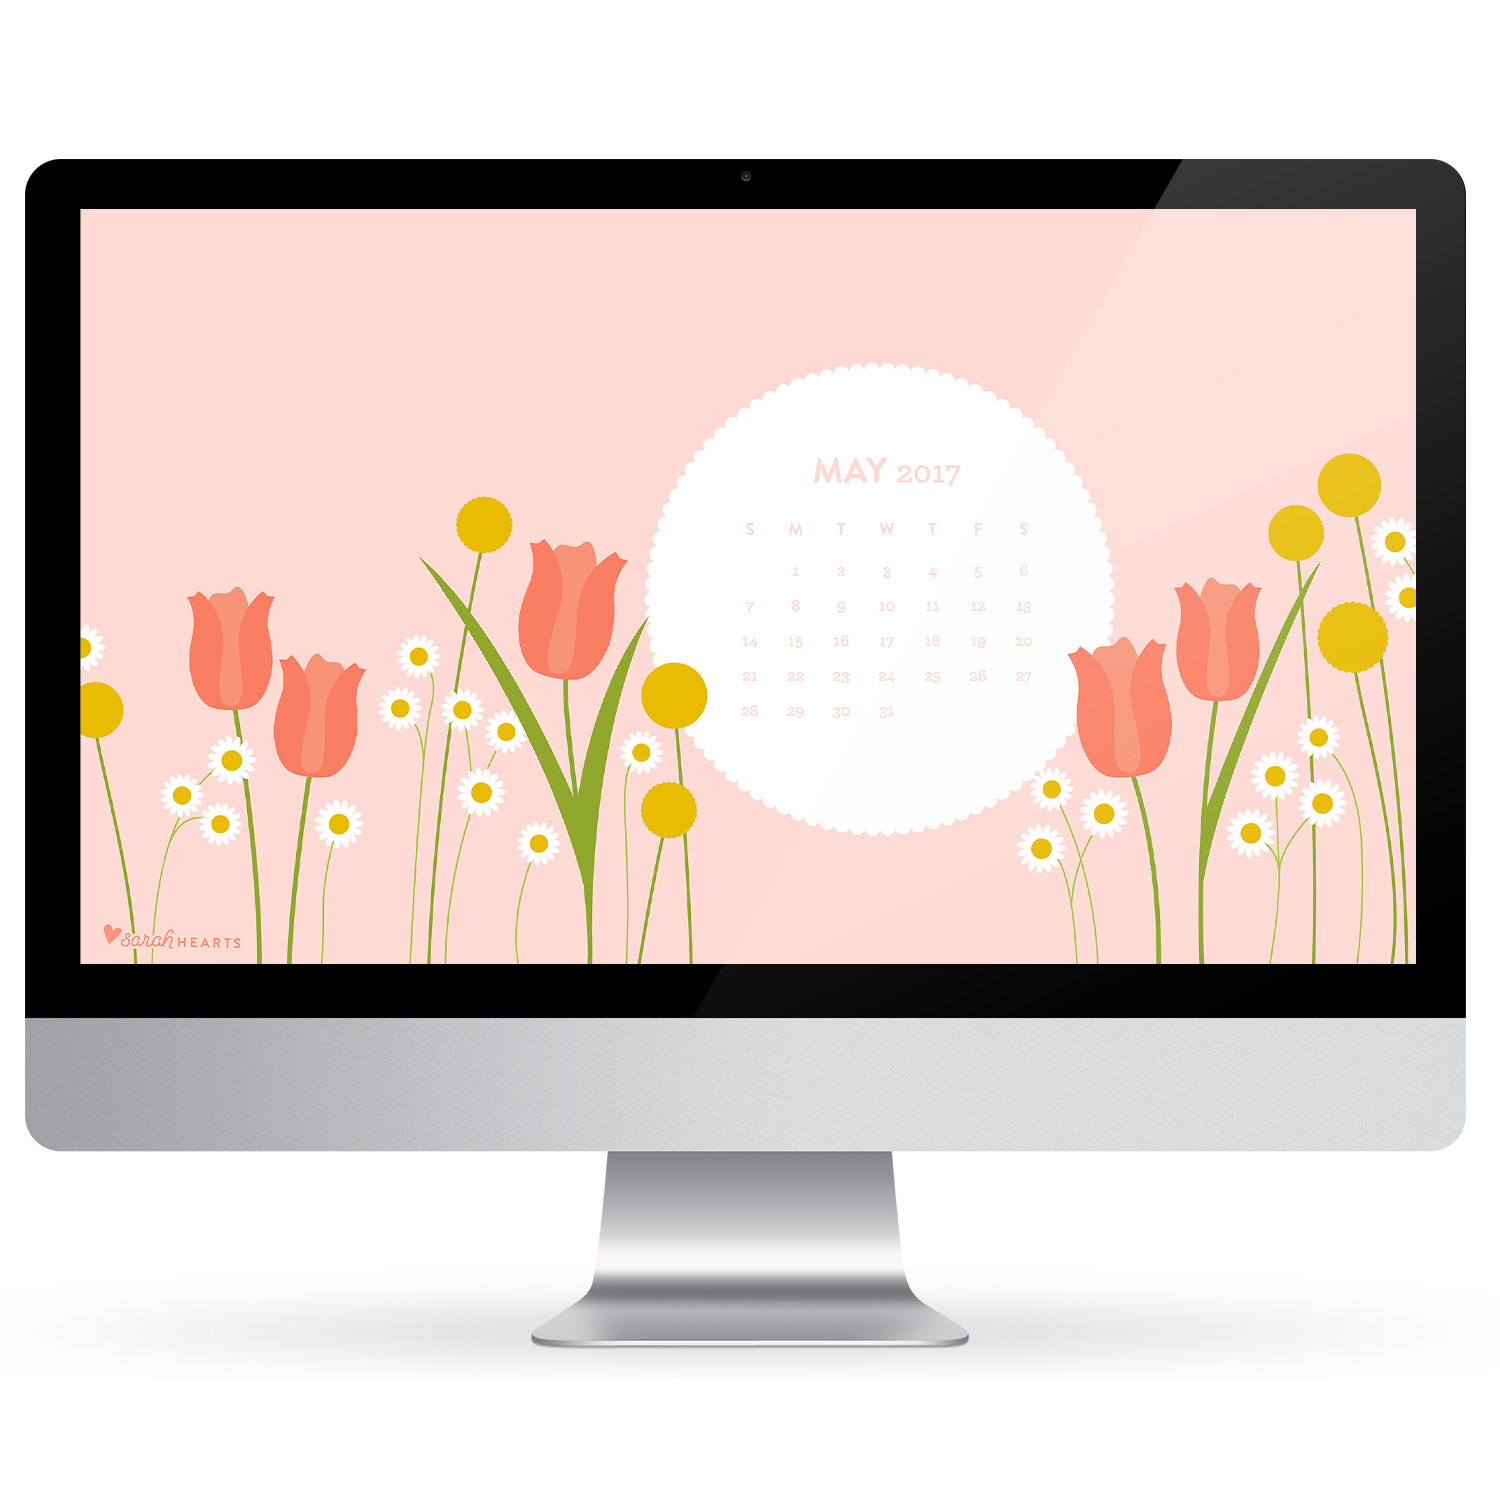 Add beautiful spring flowers to your computer, phone and tablet with this free May 2017 calendar wallpaper.